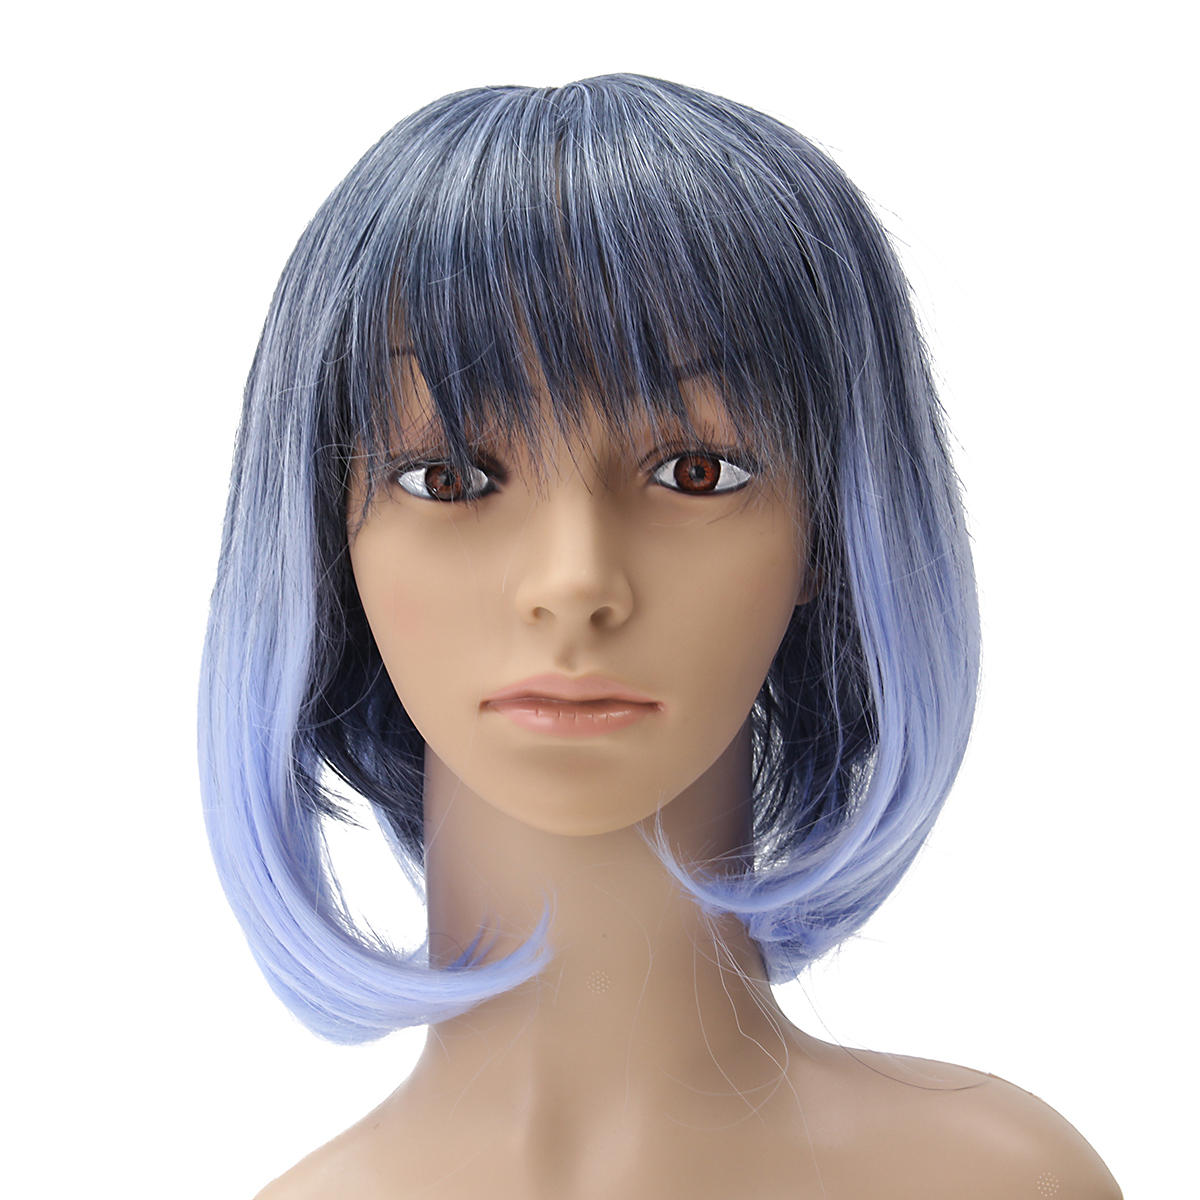 35 40cm Blue Gradient Cosplay Wig Woman Short Curly Hair Anime